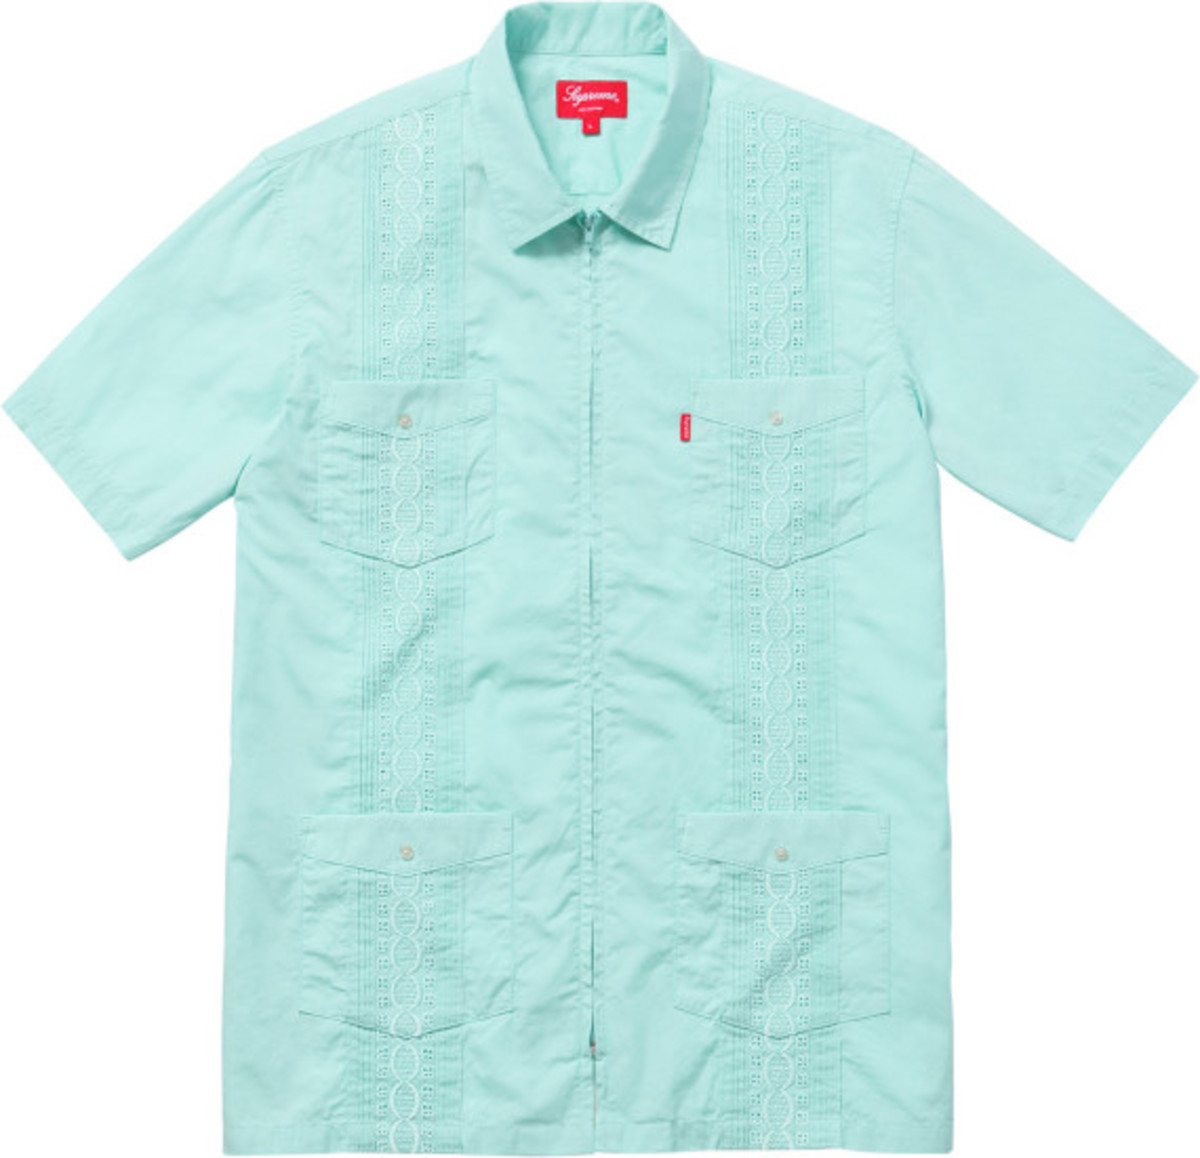 supreme-spring-summer-2015-apparel-collection-09